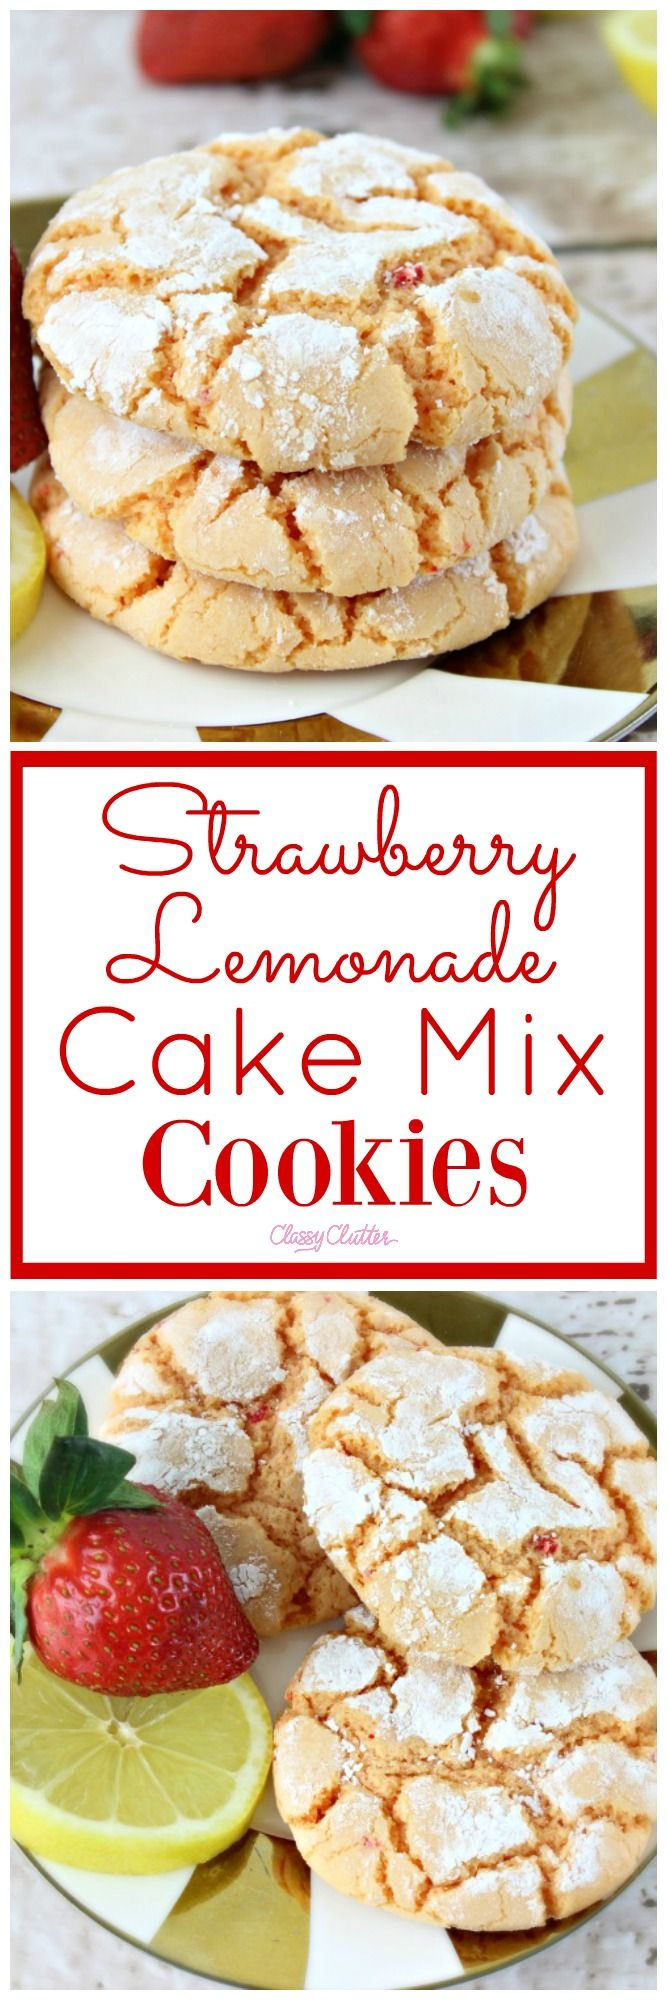 A perfect treat! These strawberry lemonade cake mix cookies are so good! Try them out!